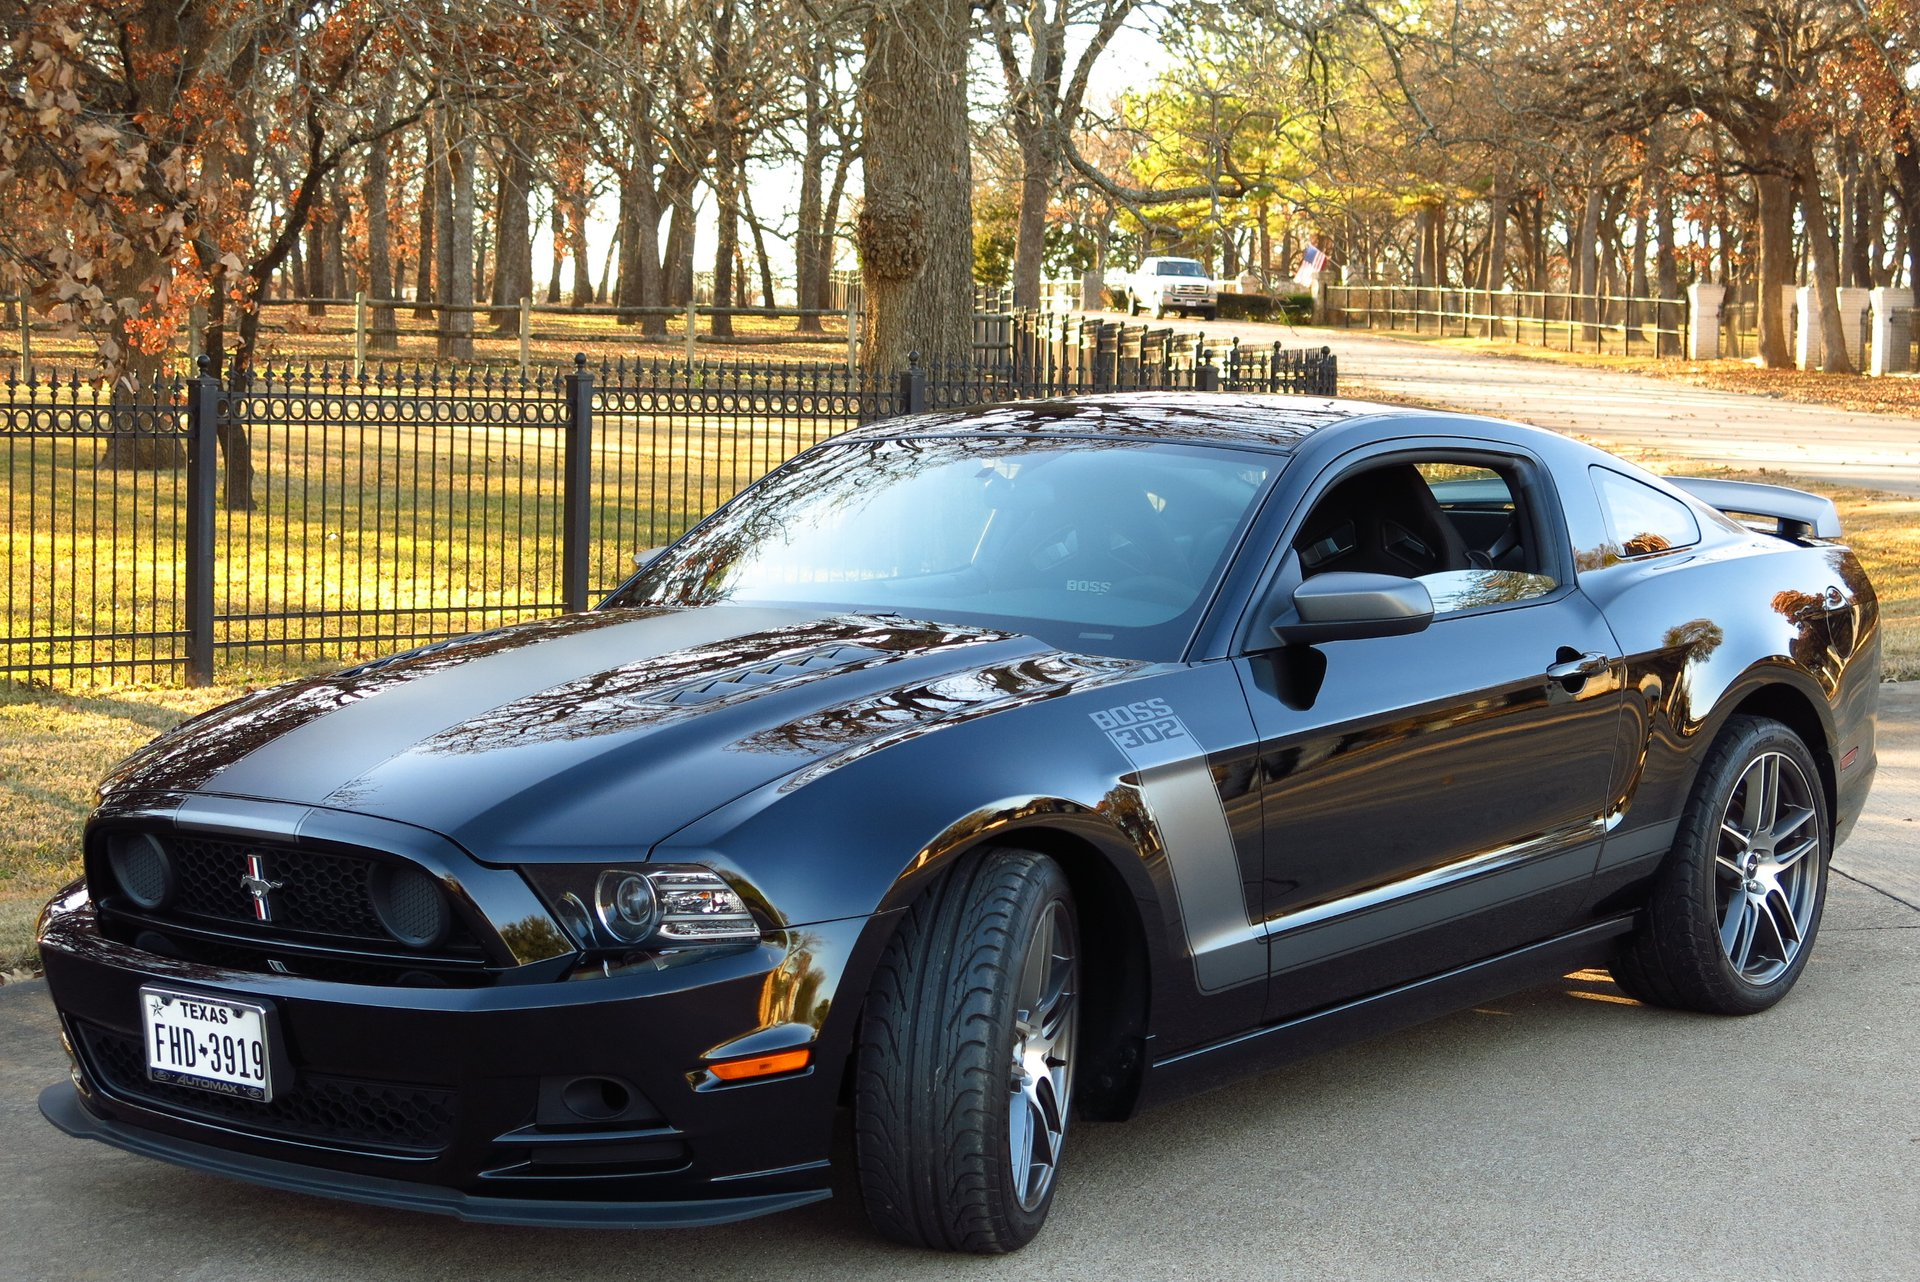 2013 ford mustang boss 302 laguna seca for sale 110303 mcg